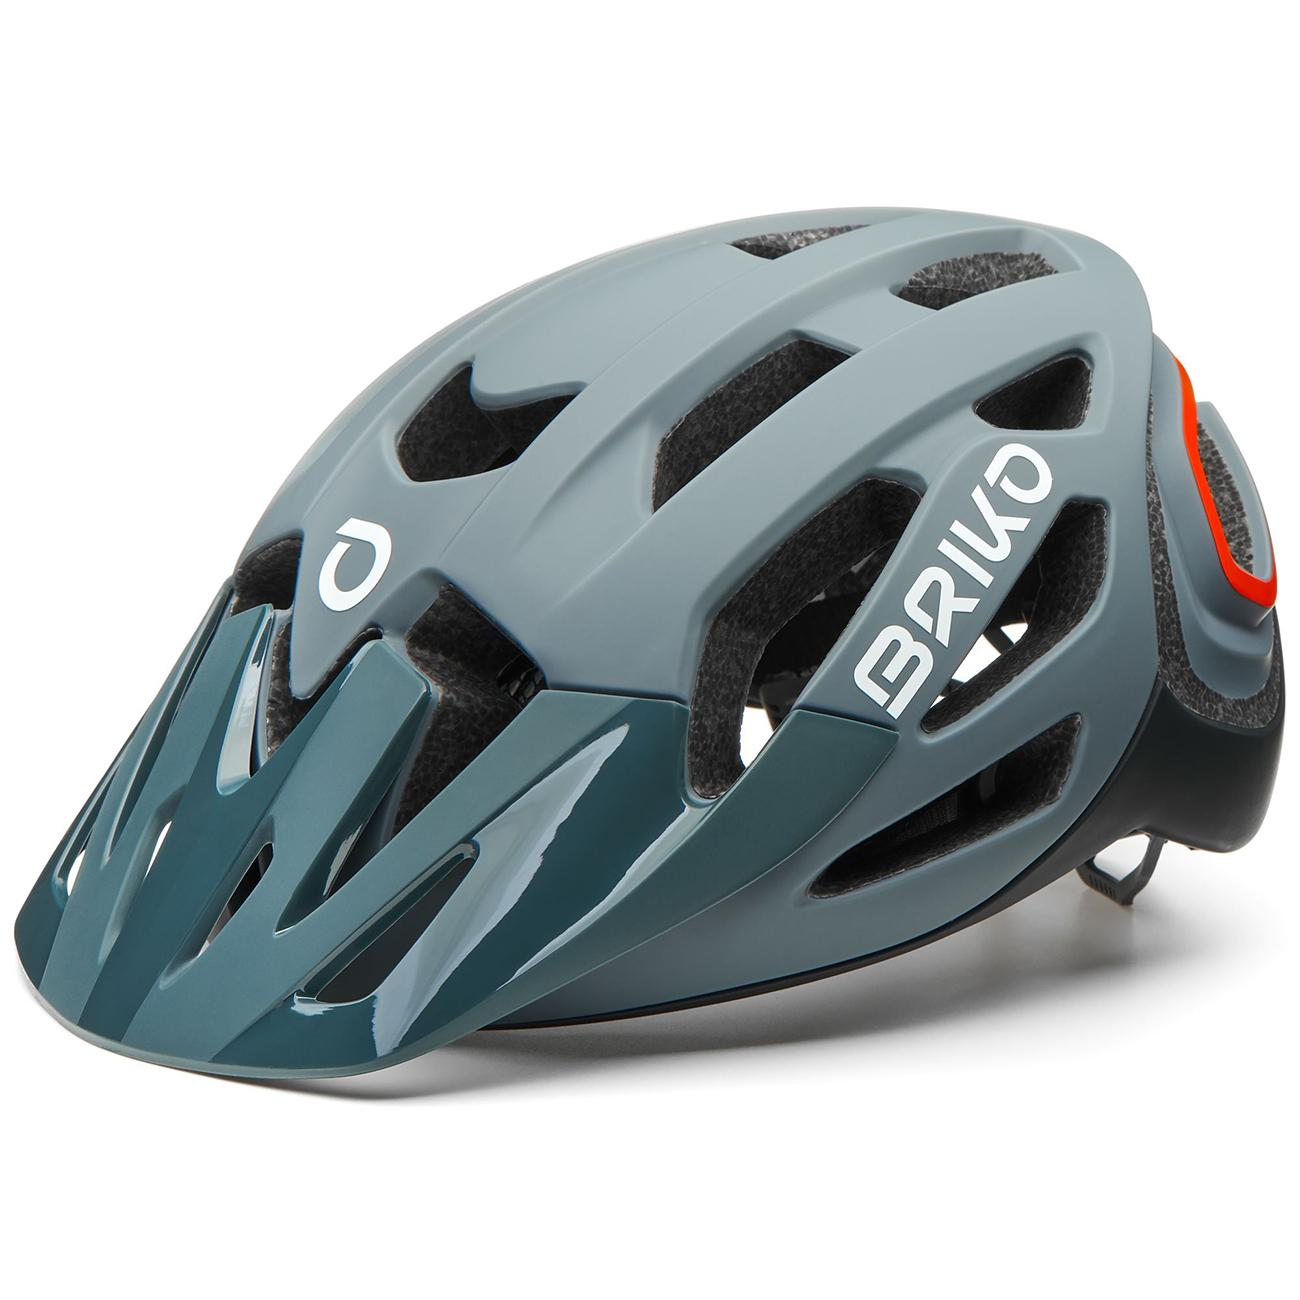 Briko Fietshelm MTB unisex Grijs Oranje - Sismic Bike Helmet Matt Dark Grey Orange Fluo